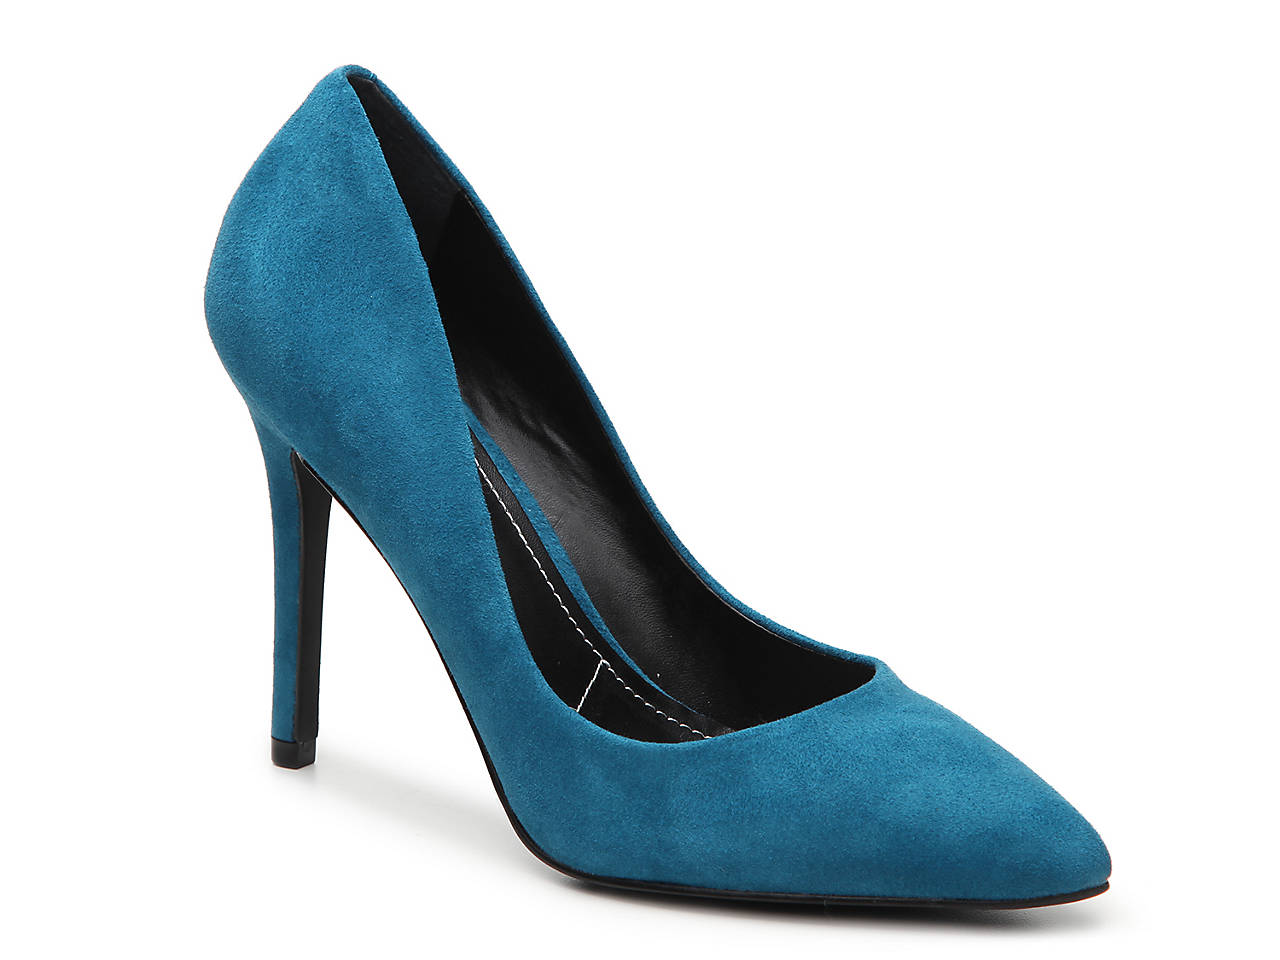 53666b61ab5c Charles by Charles David Pact Pump Women s Shoes